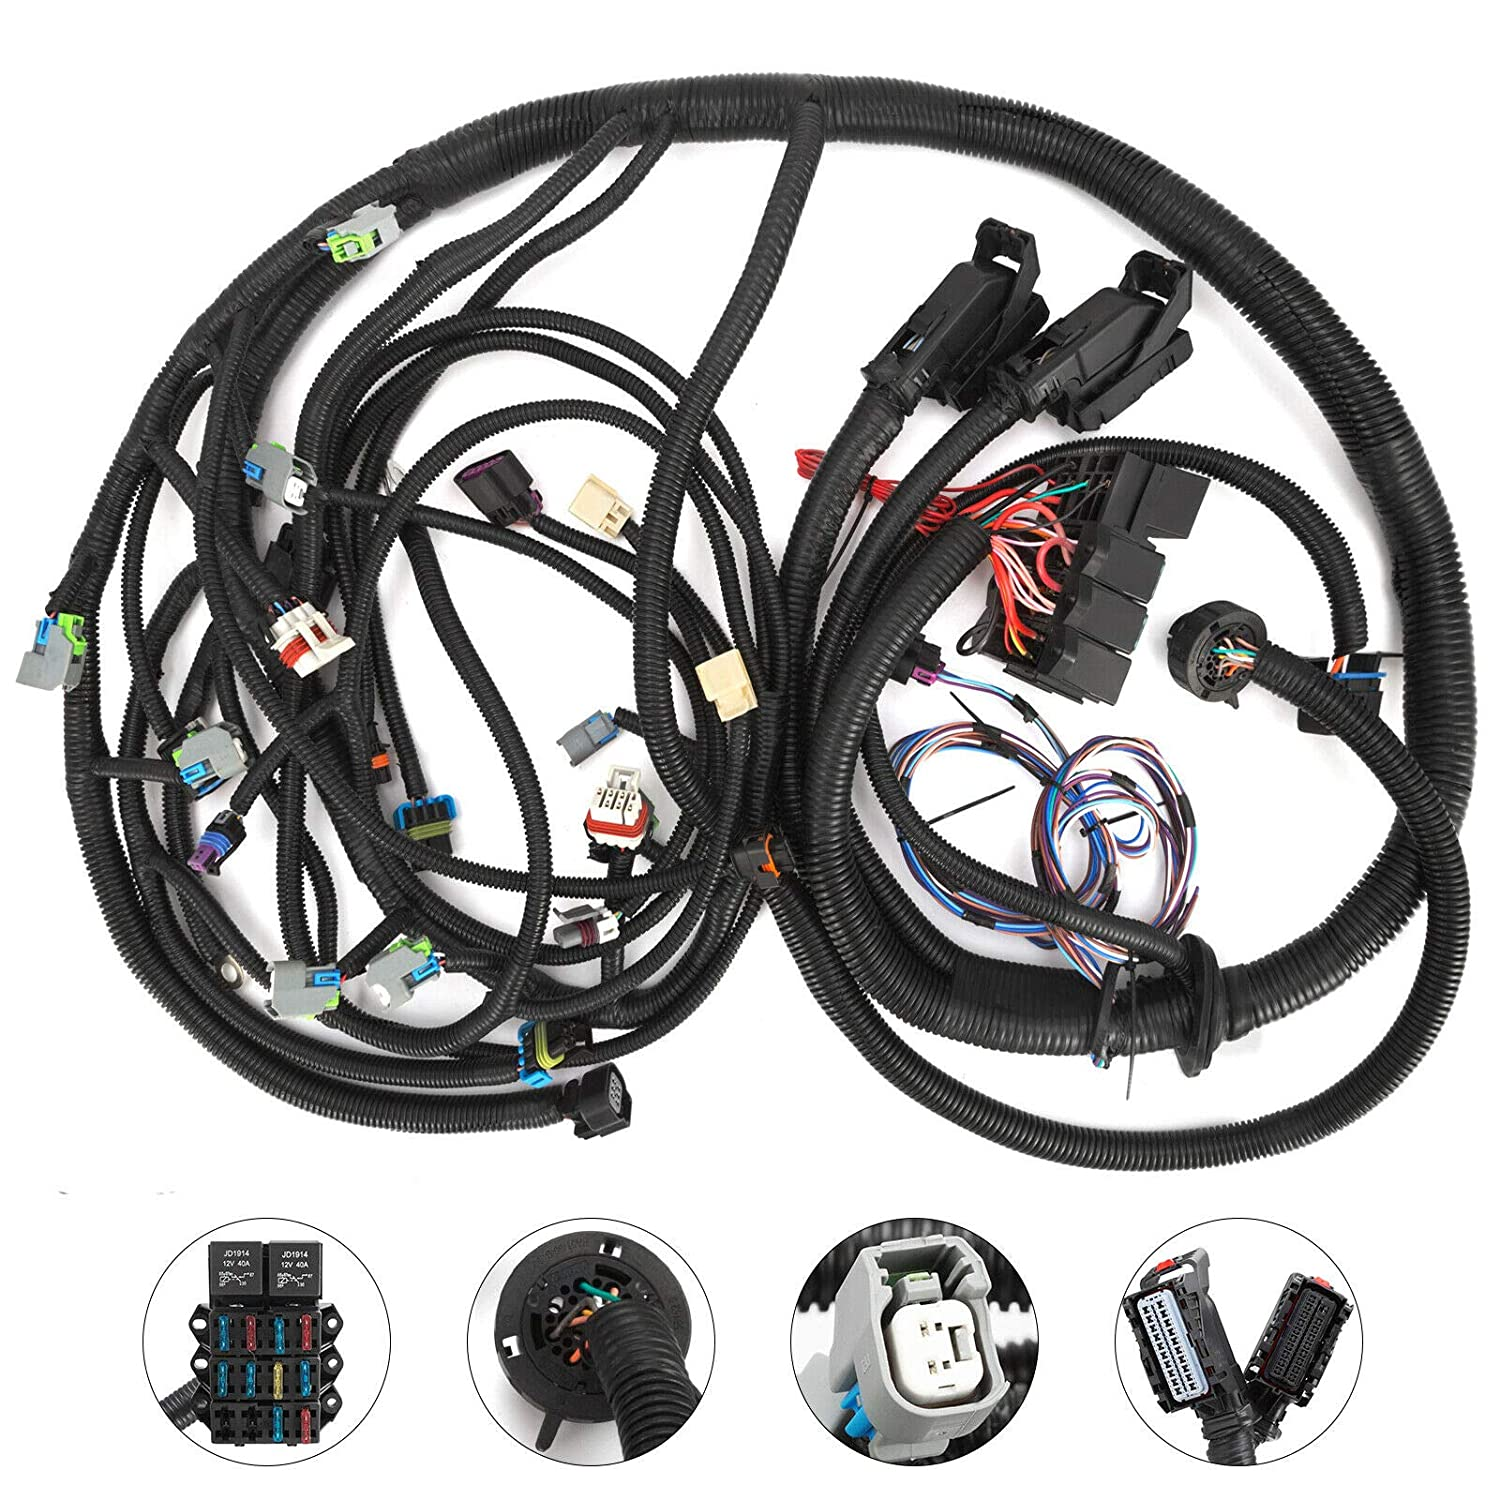 Mophorn 2008-2015 LS3 6.2L PSI STANDALONE WIRING HARNESS W/6L80E on dog harness, pony harness, suspension harness, safety harness, cable harness, nakamichi harness, battery harness, radio harness, amp bypass harness, maxi-seal harness, oxygen sensor extension harness, fall protection harness, alpine stereo harness, obd0 to obd1 conversion harness, electrical harness, engine harness, pet harness,